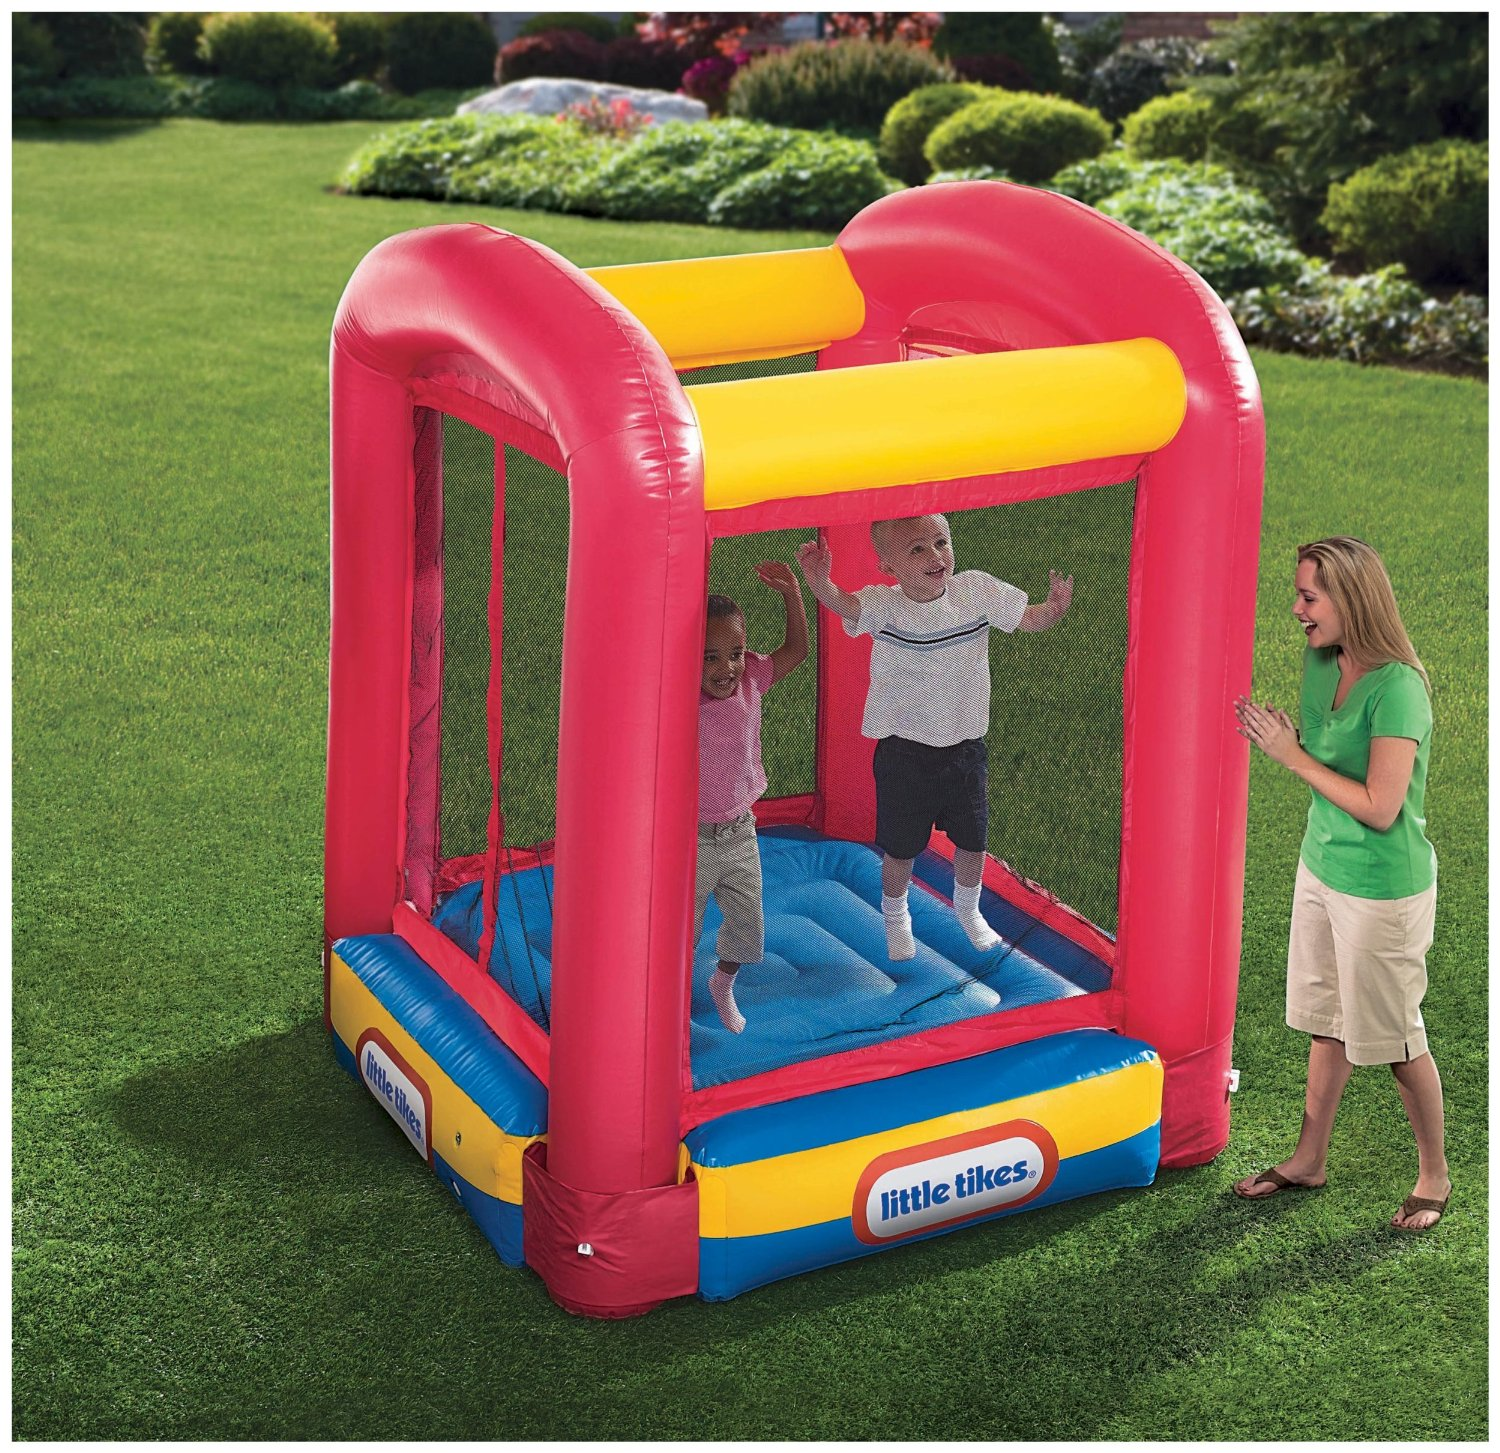 Fancy Little Tikes Bounce House For Play Yard Ideas: Wonderful Little Tikes Bounce House Made Of Caoutchouc In Pink Blue Yellow For Play Yard Ideas